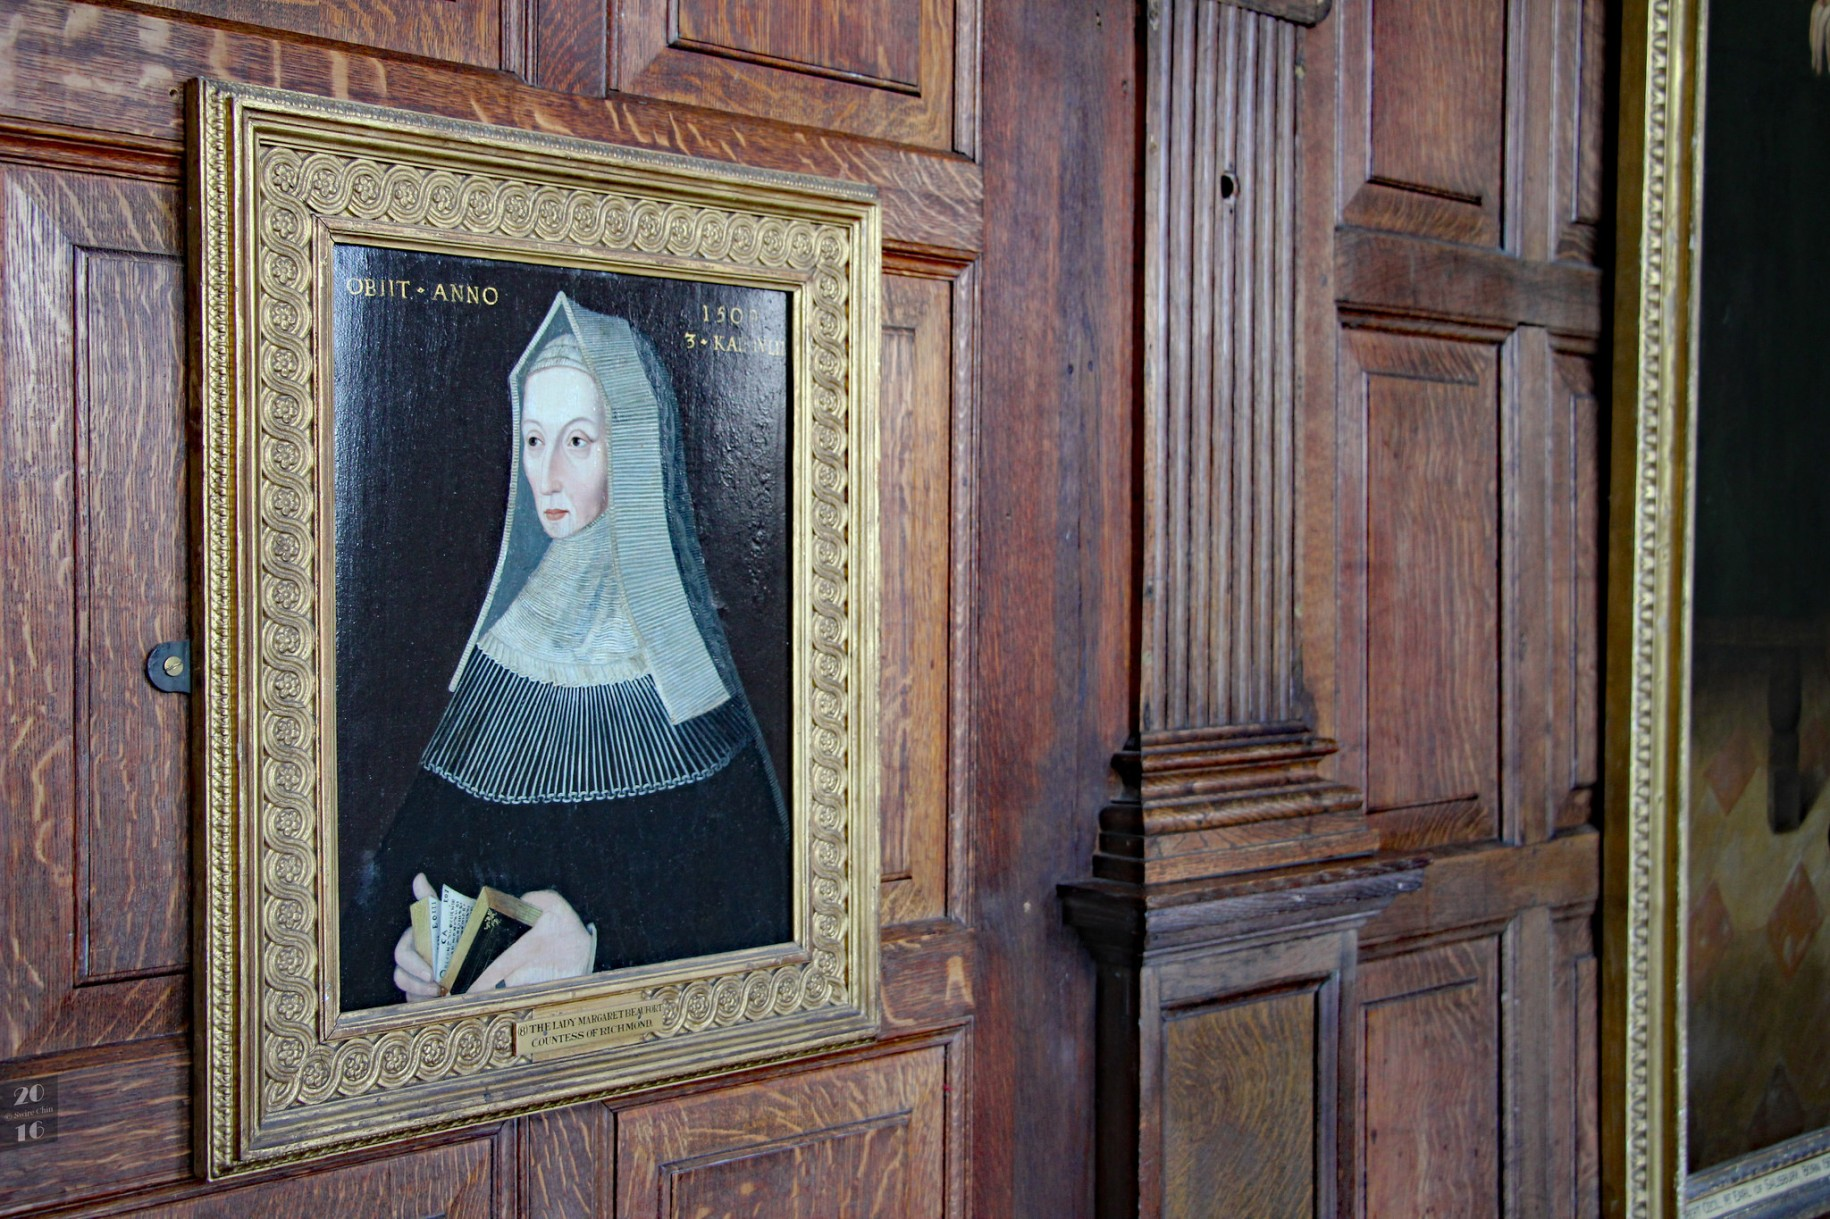 A portrait of a white woman wearing a black dress and white veil hangs on a wall covered with dark wood panels